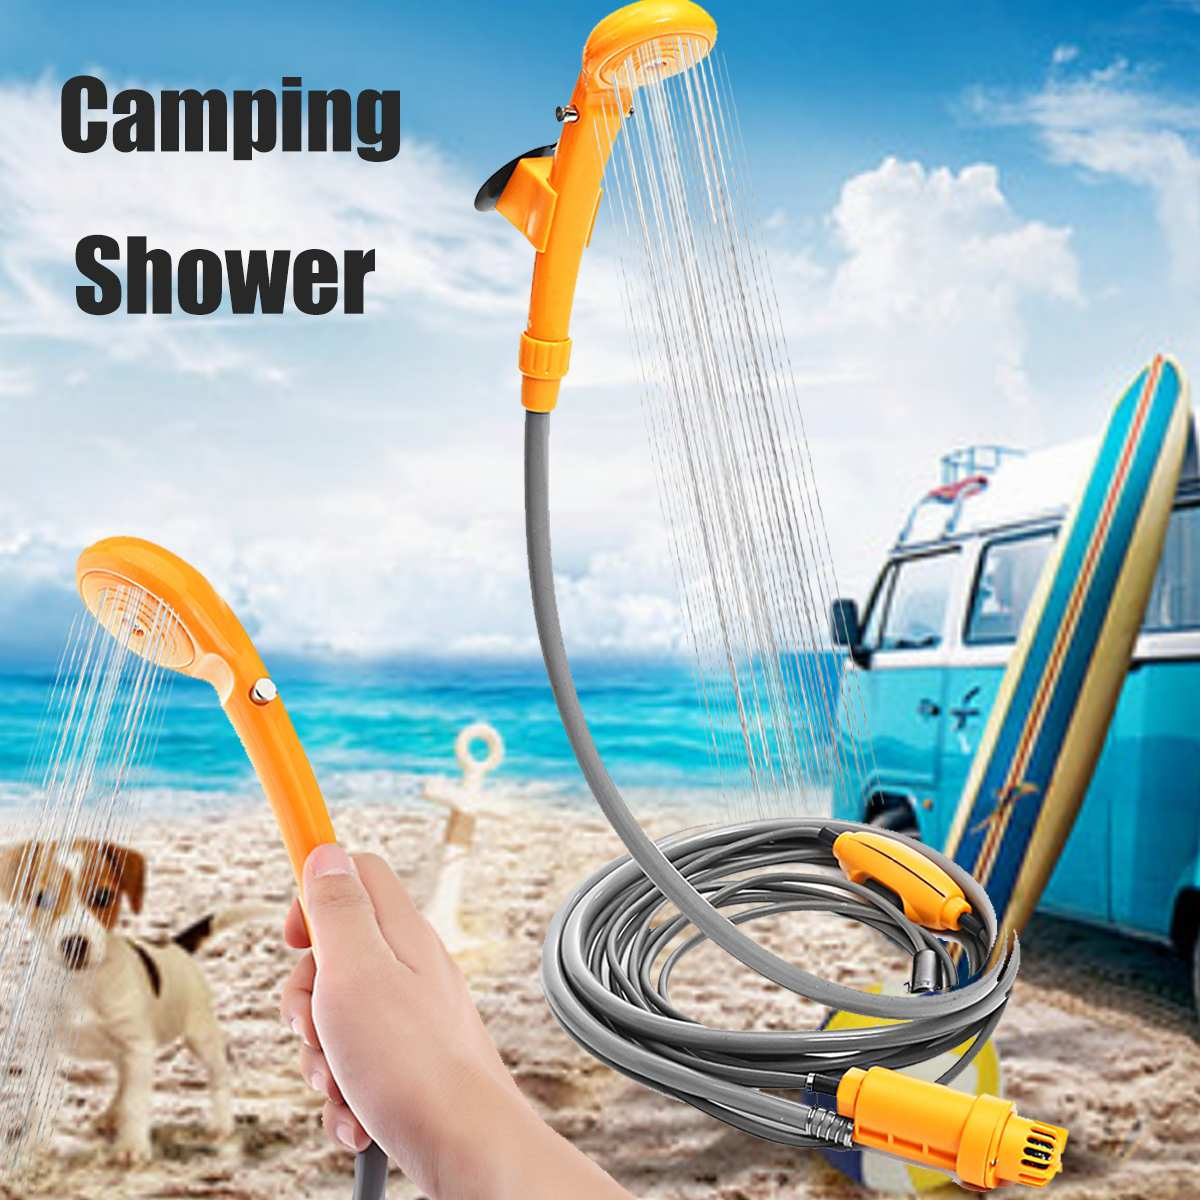 12V Portable Outdoor Camping Travel Car Pet Dog Shower DC12V Car Washer Electric Shower Washer Pump Pipe Set